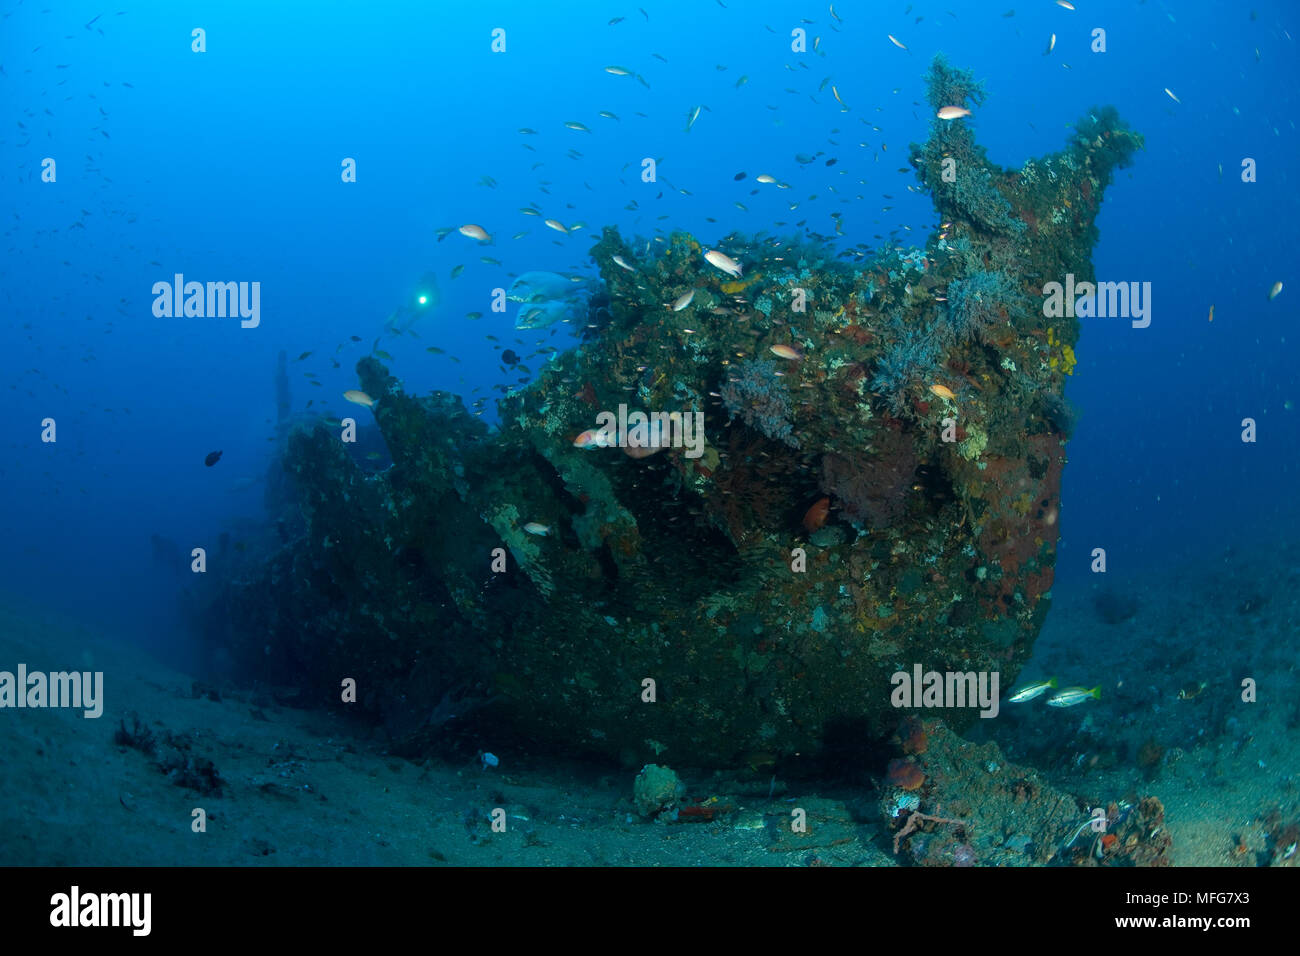 Scuba diver with Japanese wreck of II World War, Lombok island, Indonesia, Pacific Ocean  Date: 22.07.08  Ref: ZB777_117103_0020  COMPULSORY CREDIT: O - Stock Image